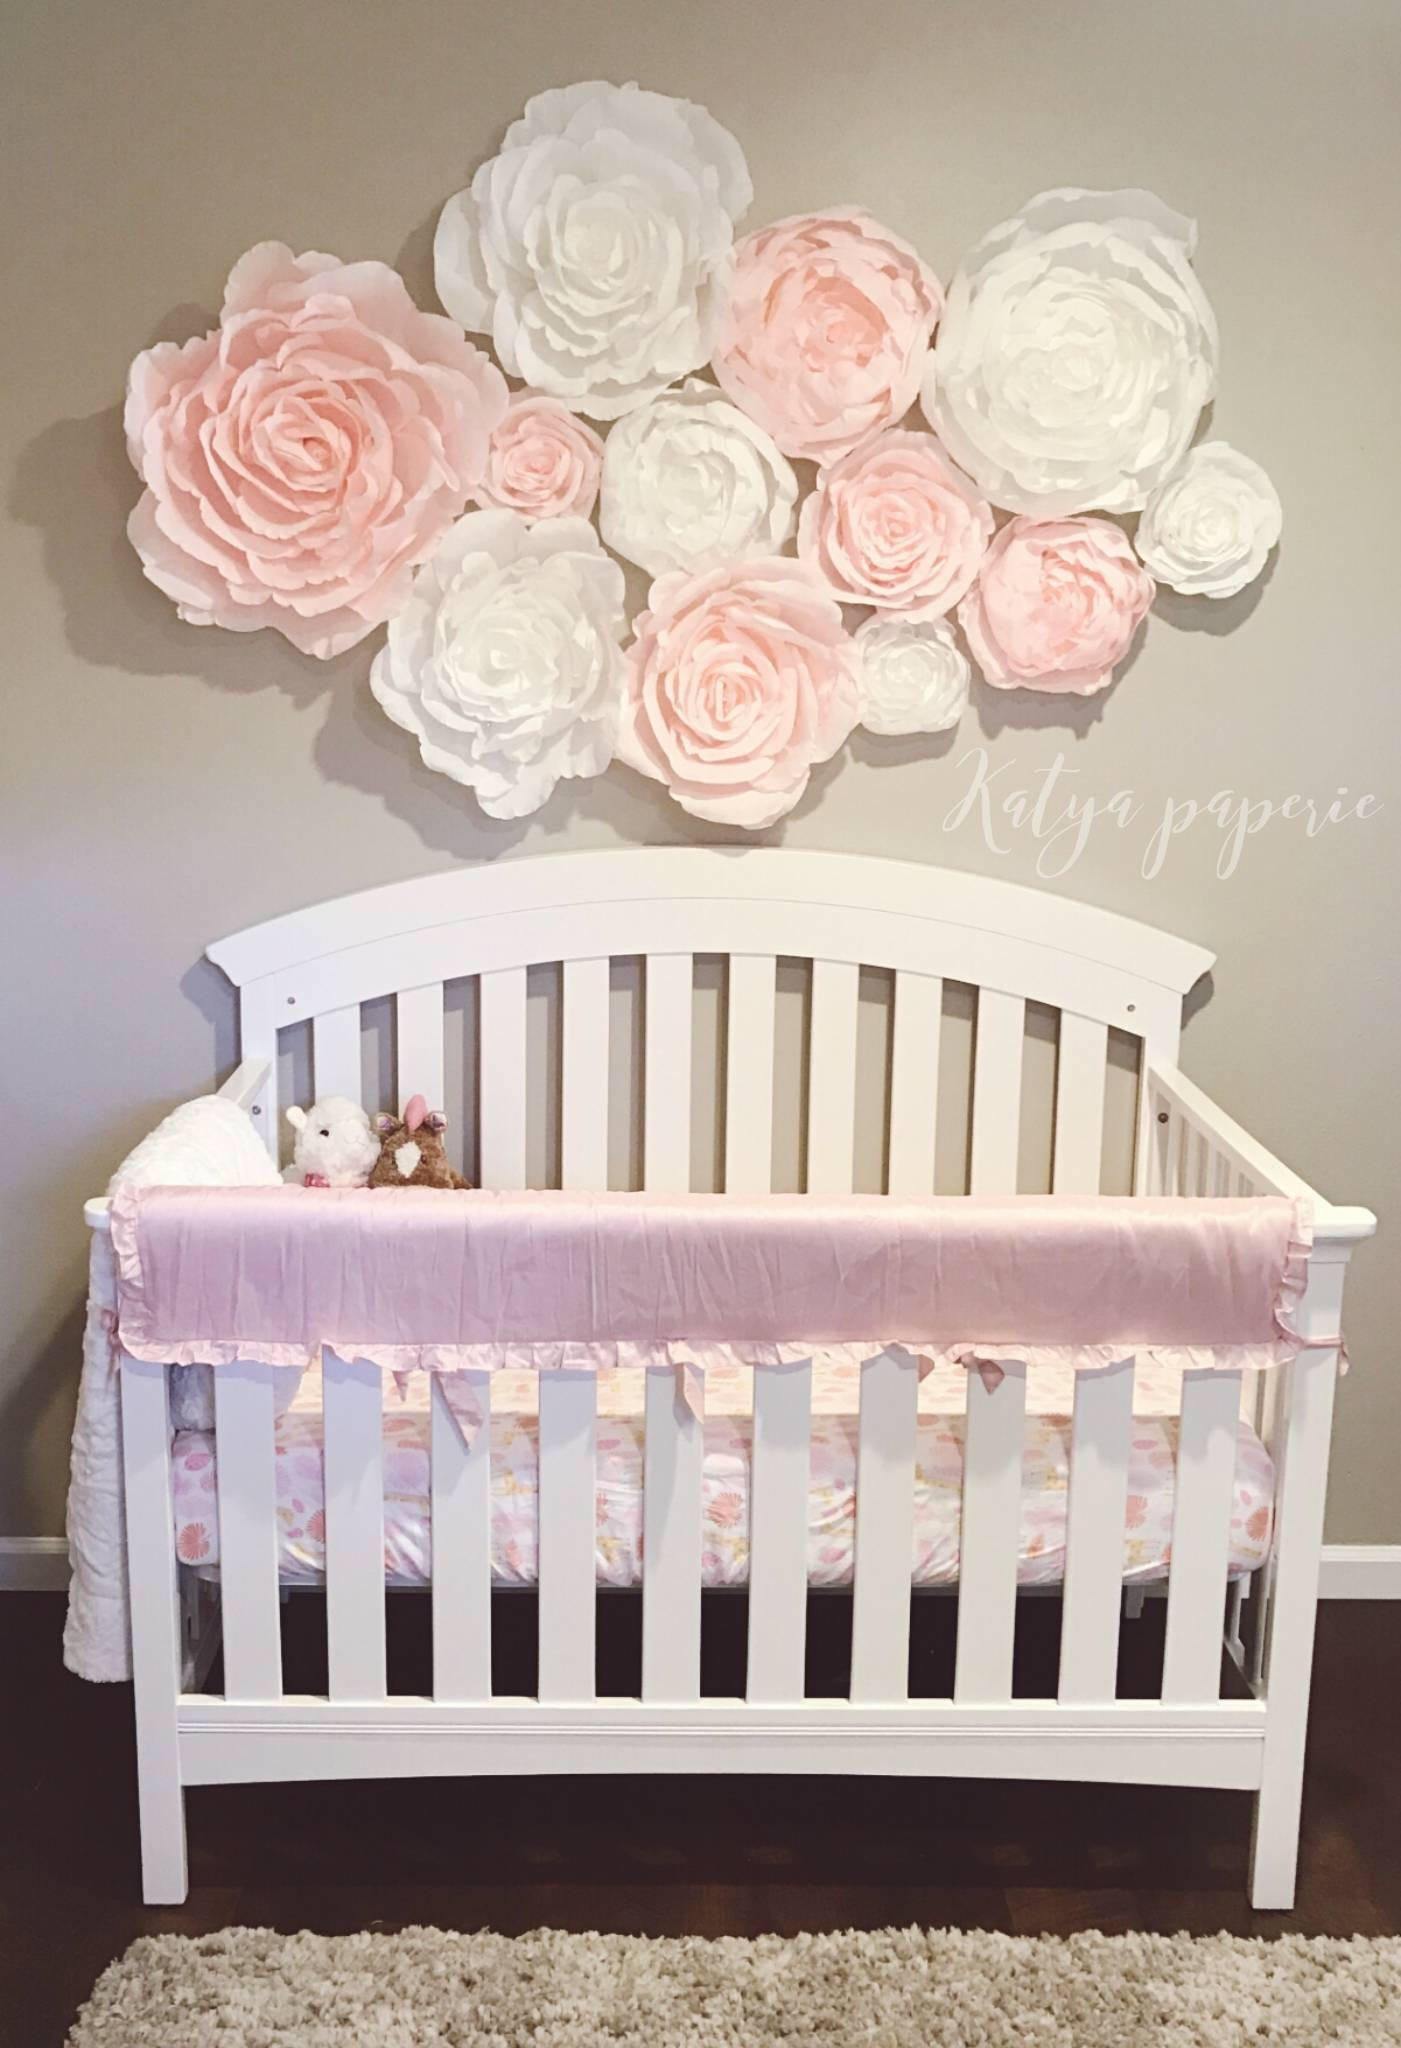 Pin By Kristin Cox On Baby Nursery Wallpaper Blush